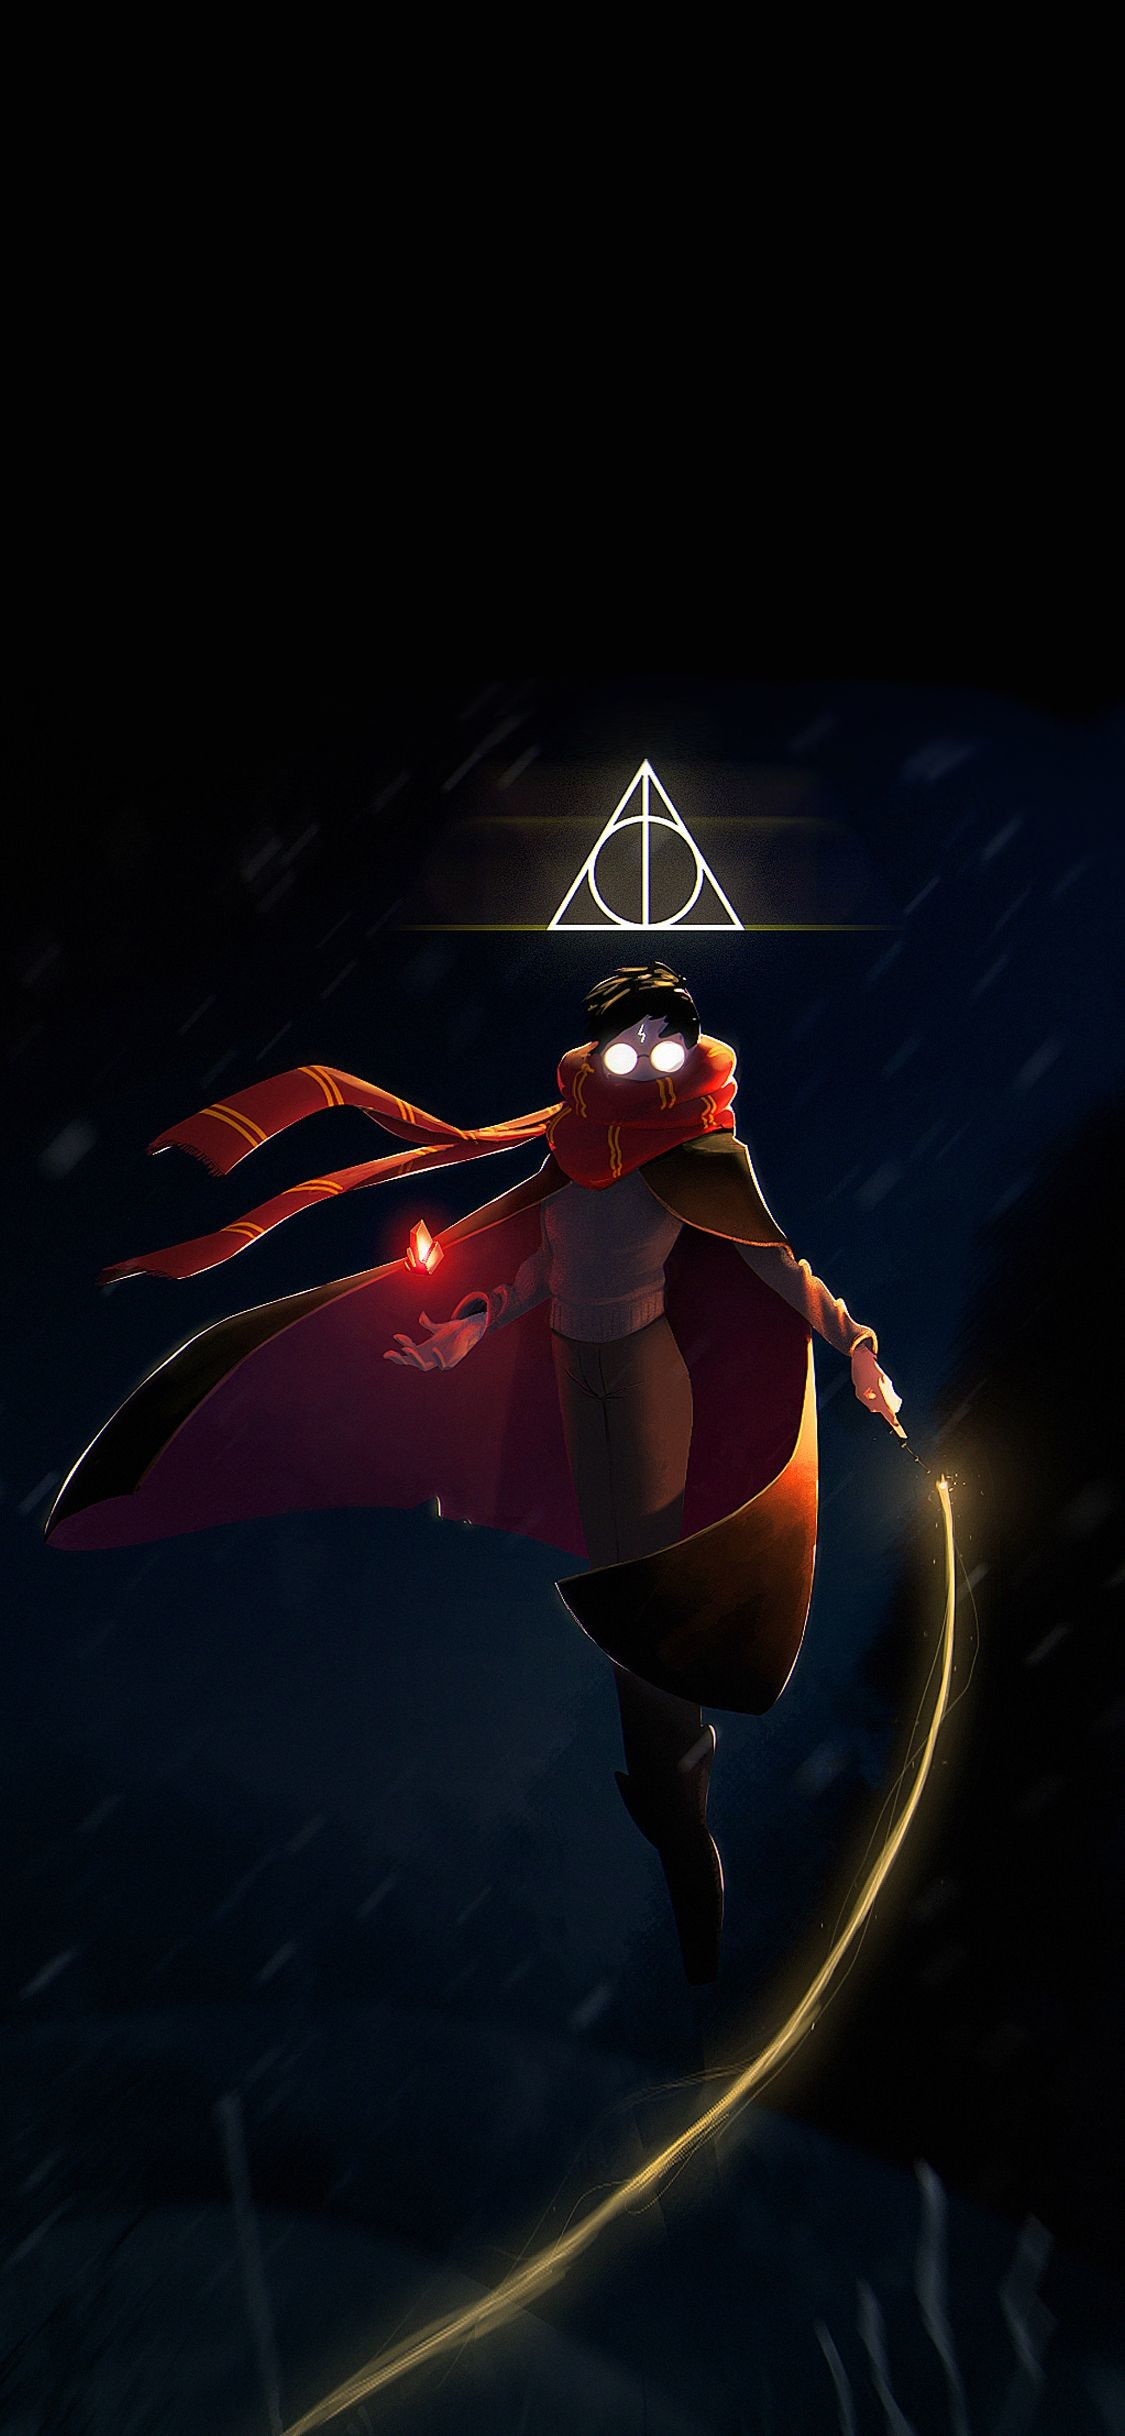 Harry Potter Iphone X   1125x2436 Wallpaper   teahubio 1125x2436